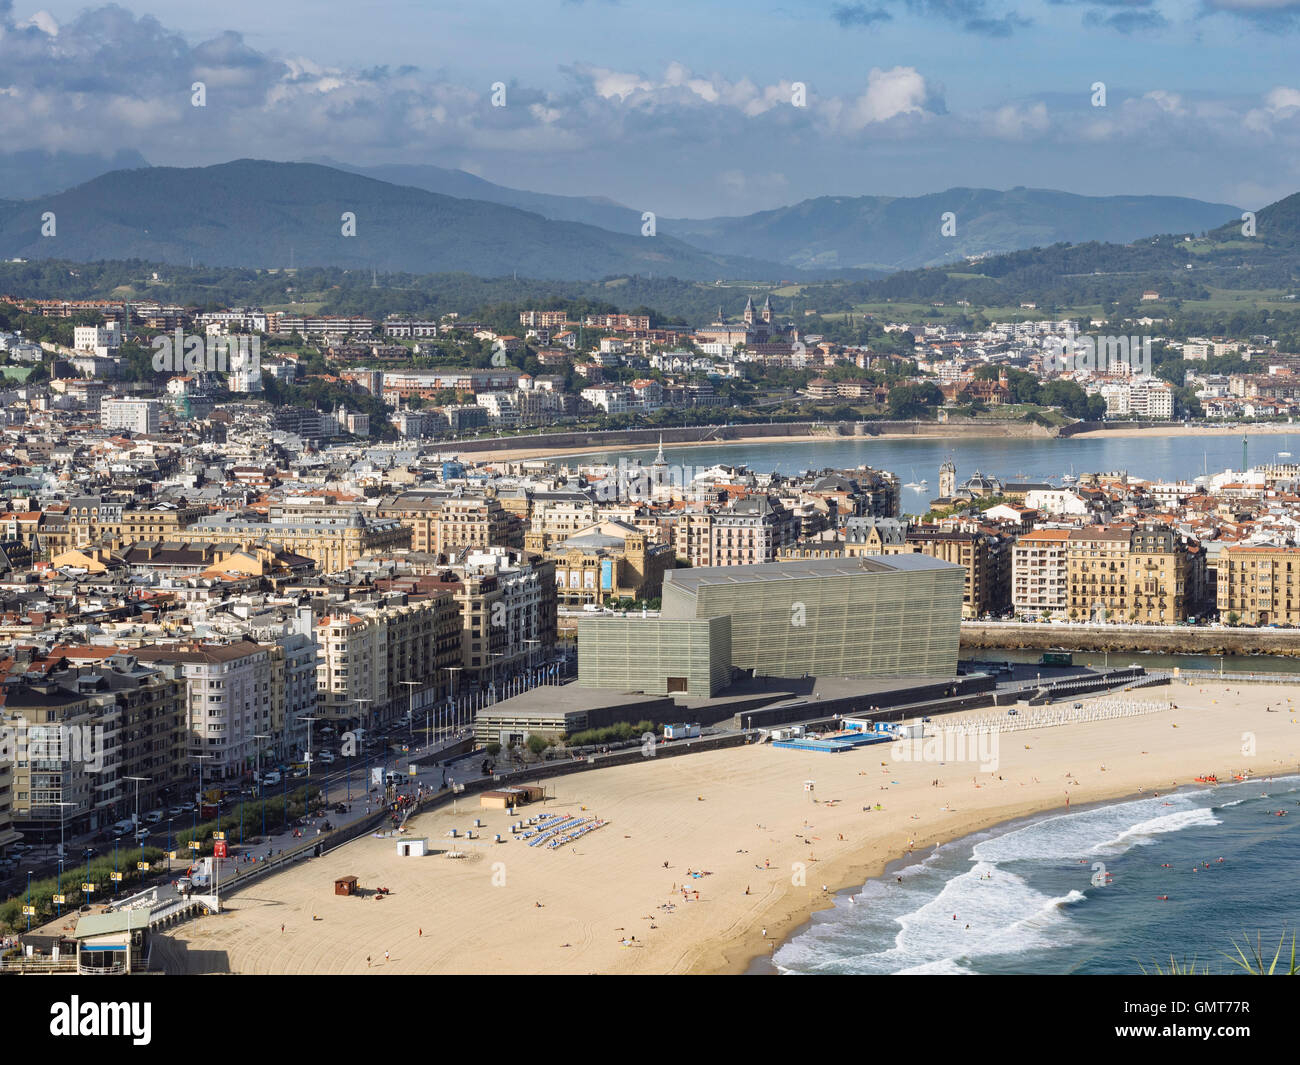 View of San Sebastian Donostia with Zurriola beach and the Kursaal n the foreground Basque Country Spain - Stock Image